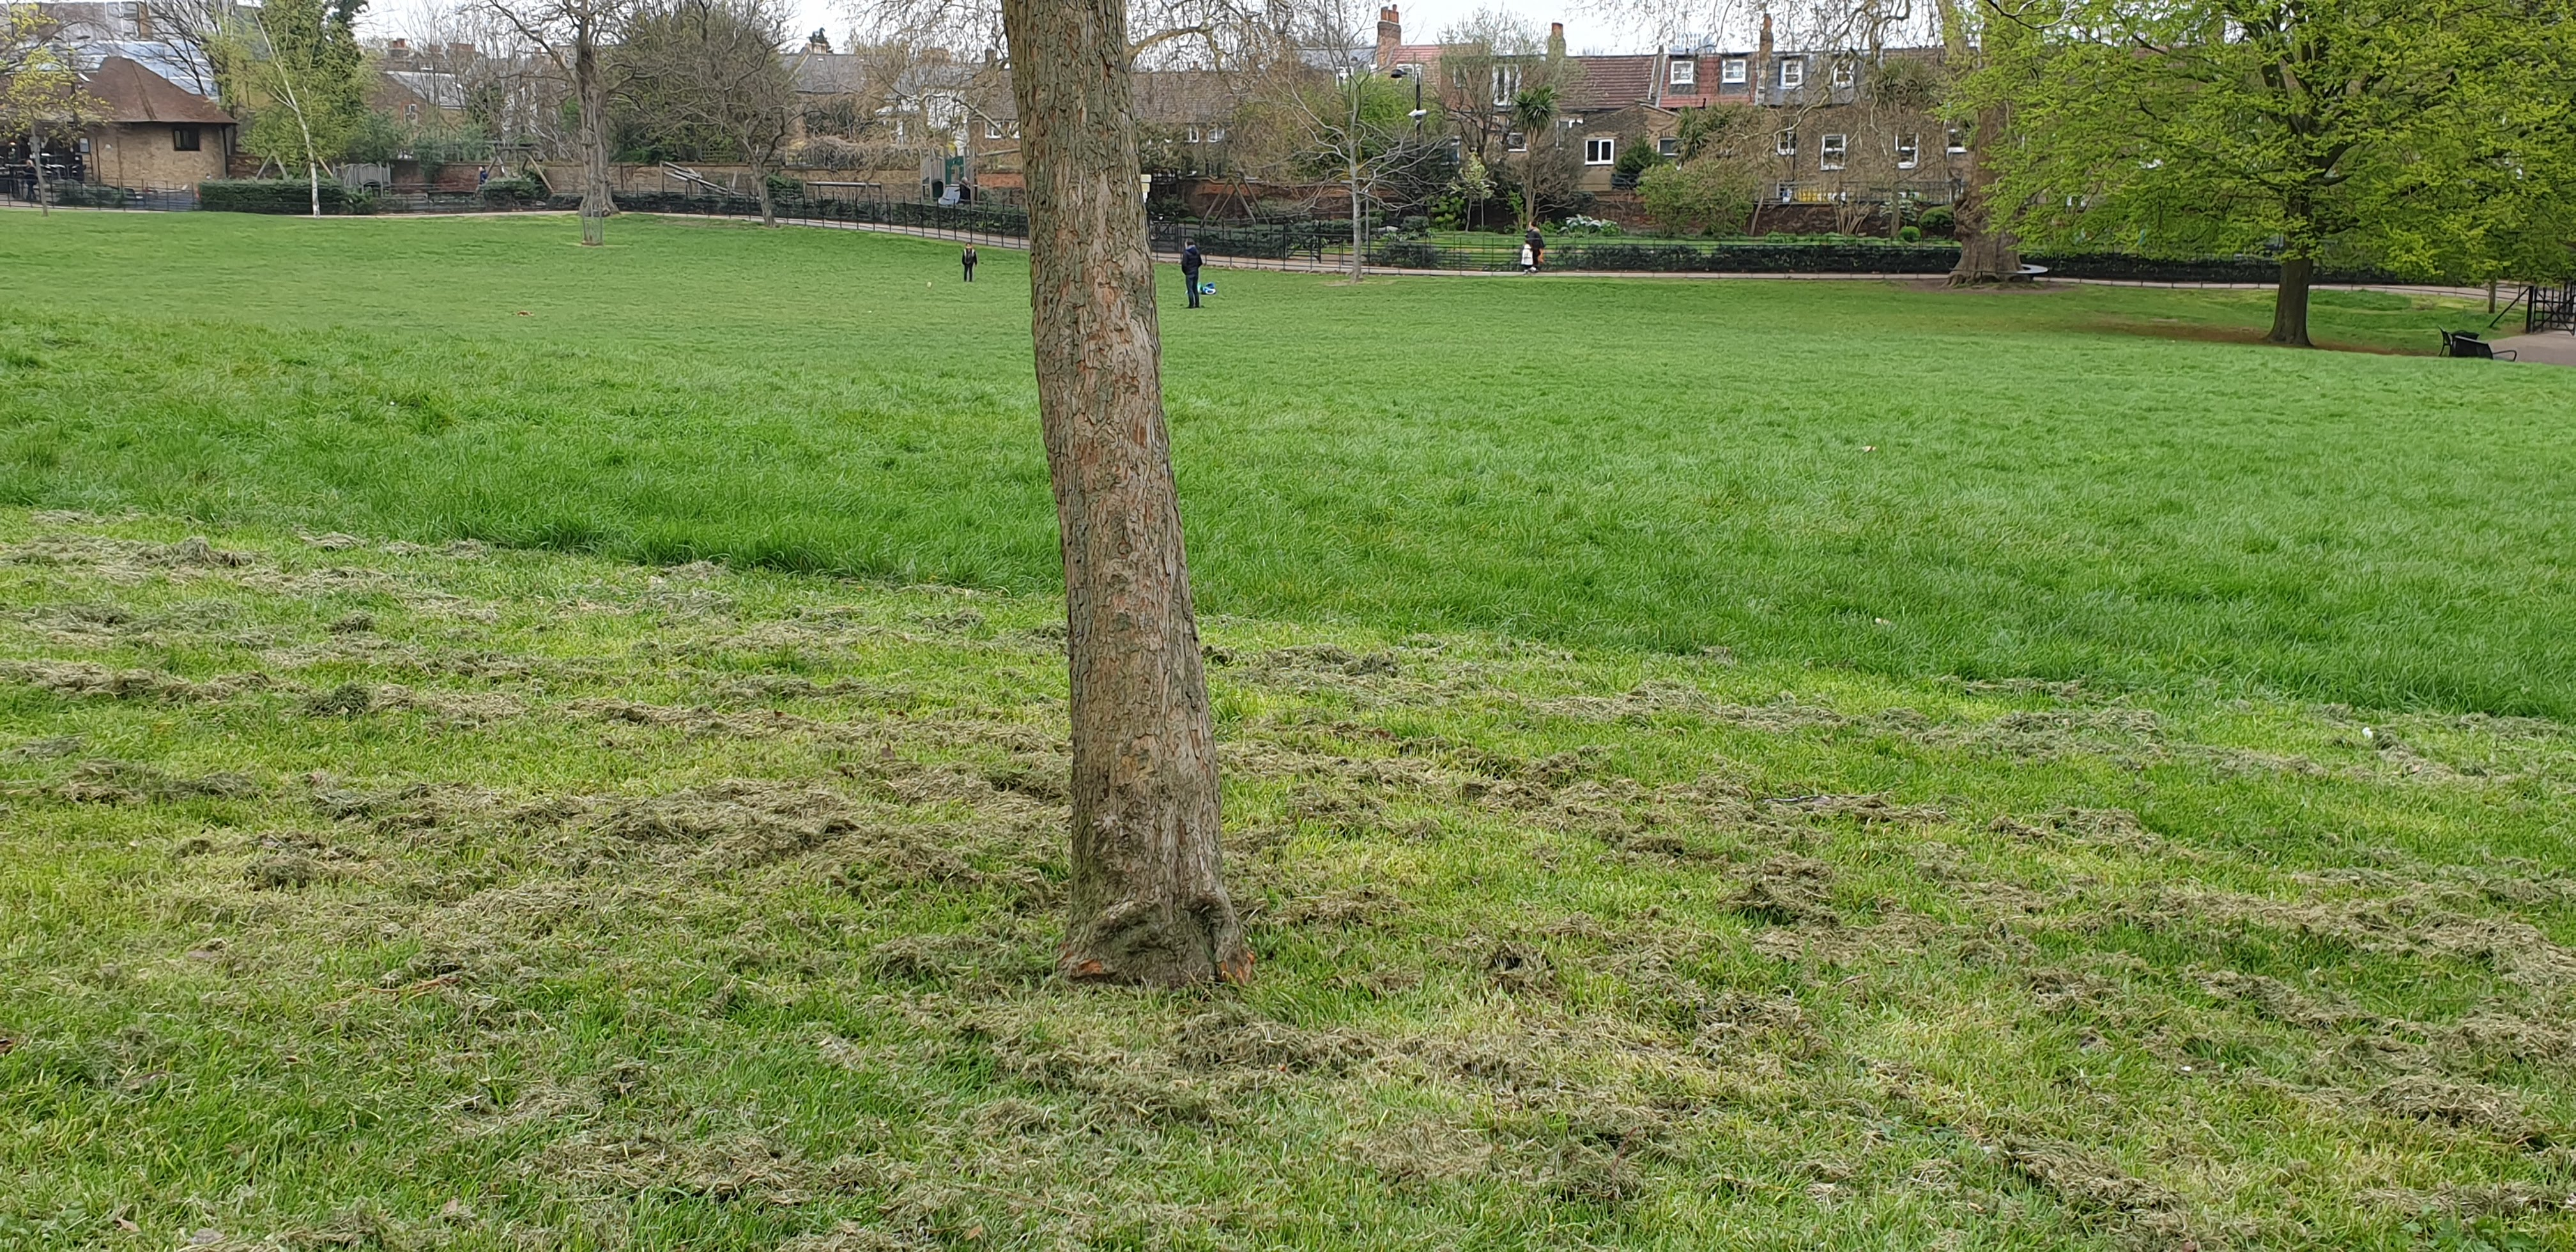 Manor House Gardens, Lewisham April 2019 - fresh strimmer damage which could introduce fungal disease within the damaged cambium layer.